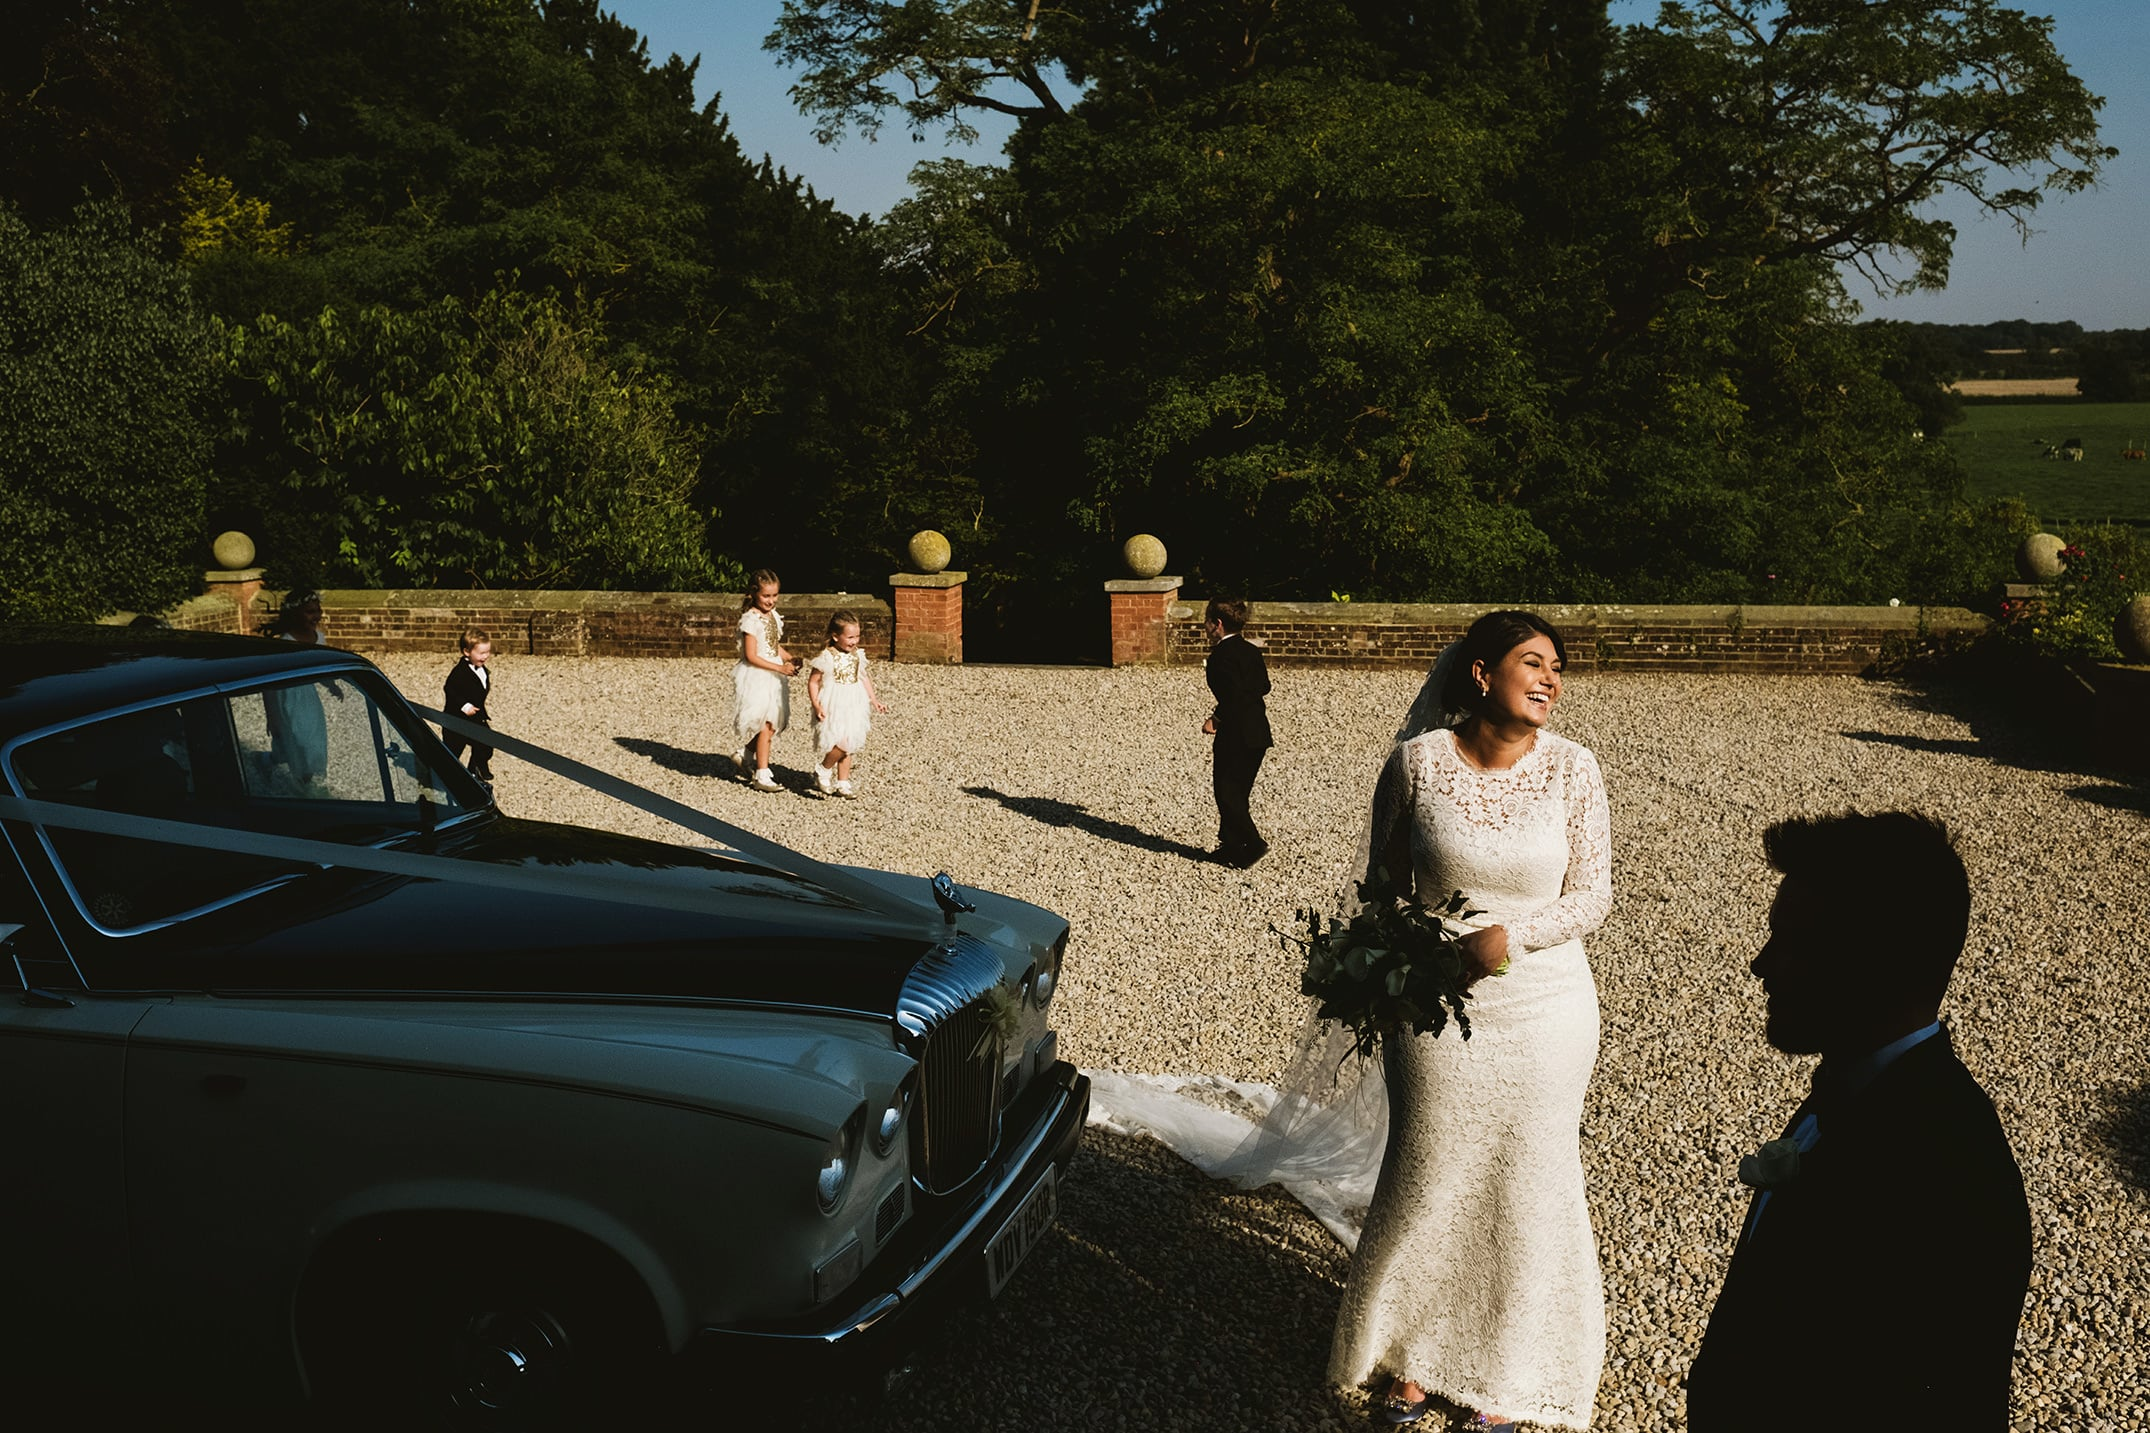 Documentary Wedding photography example image - bride next to wedding car with shadowed silhouette of groom in foreground to right of image. Four children play in the background. Courtyard setting with trees in background